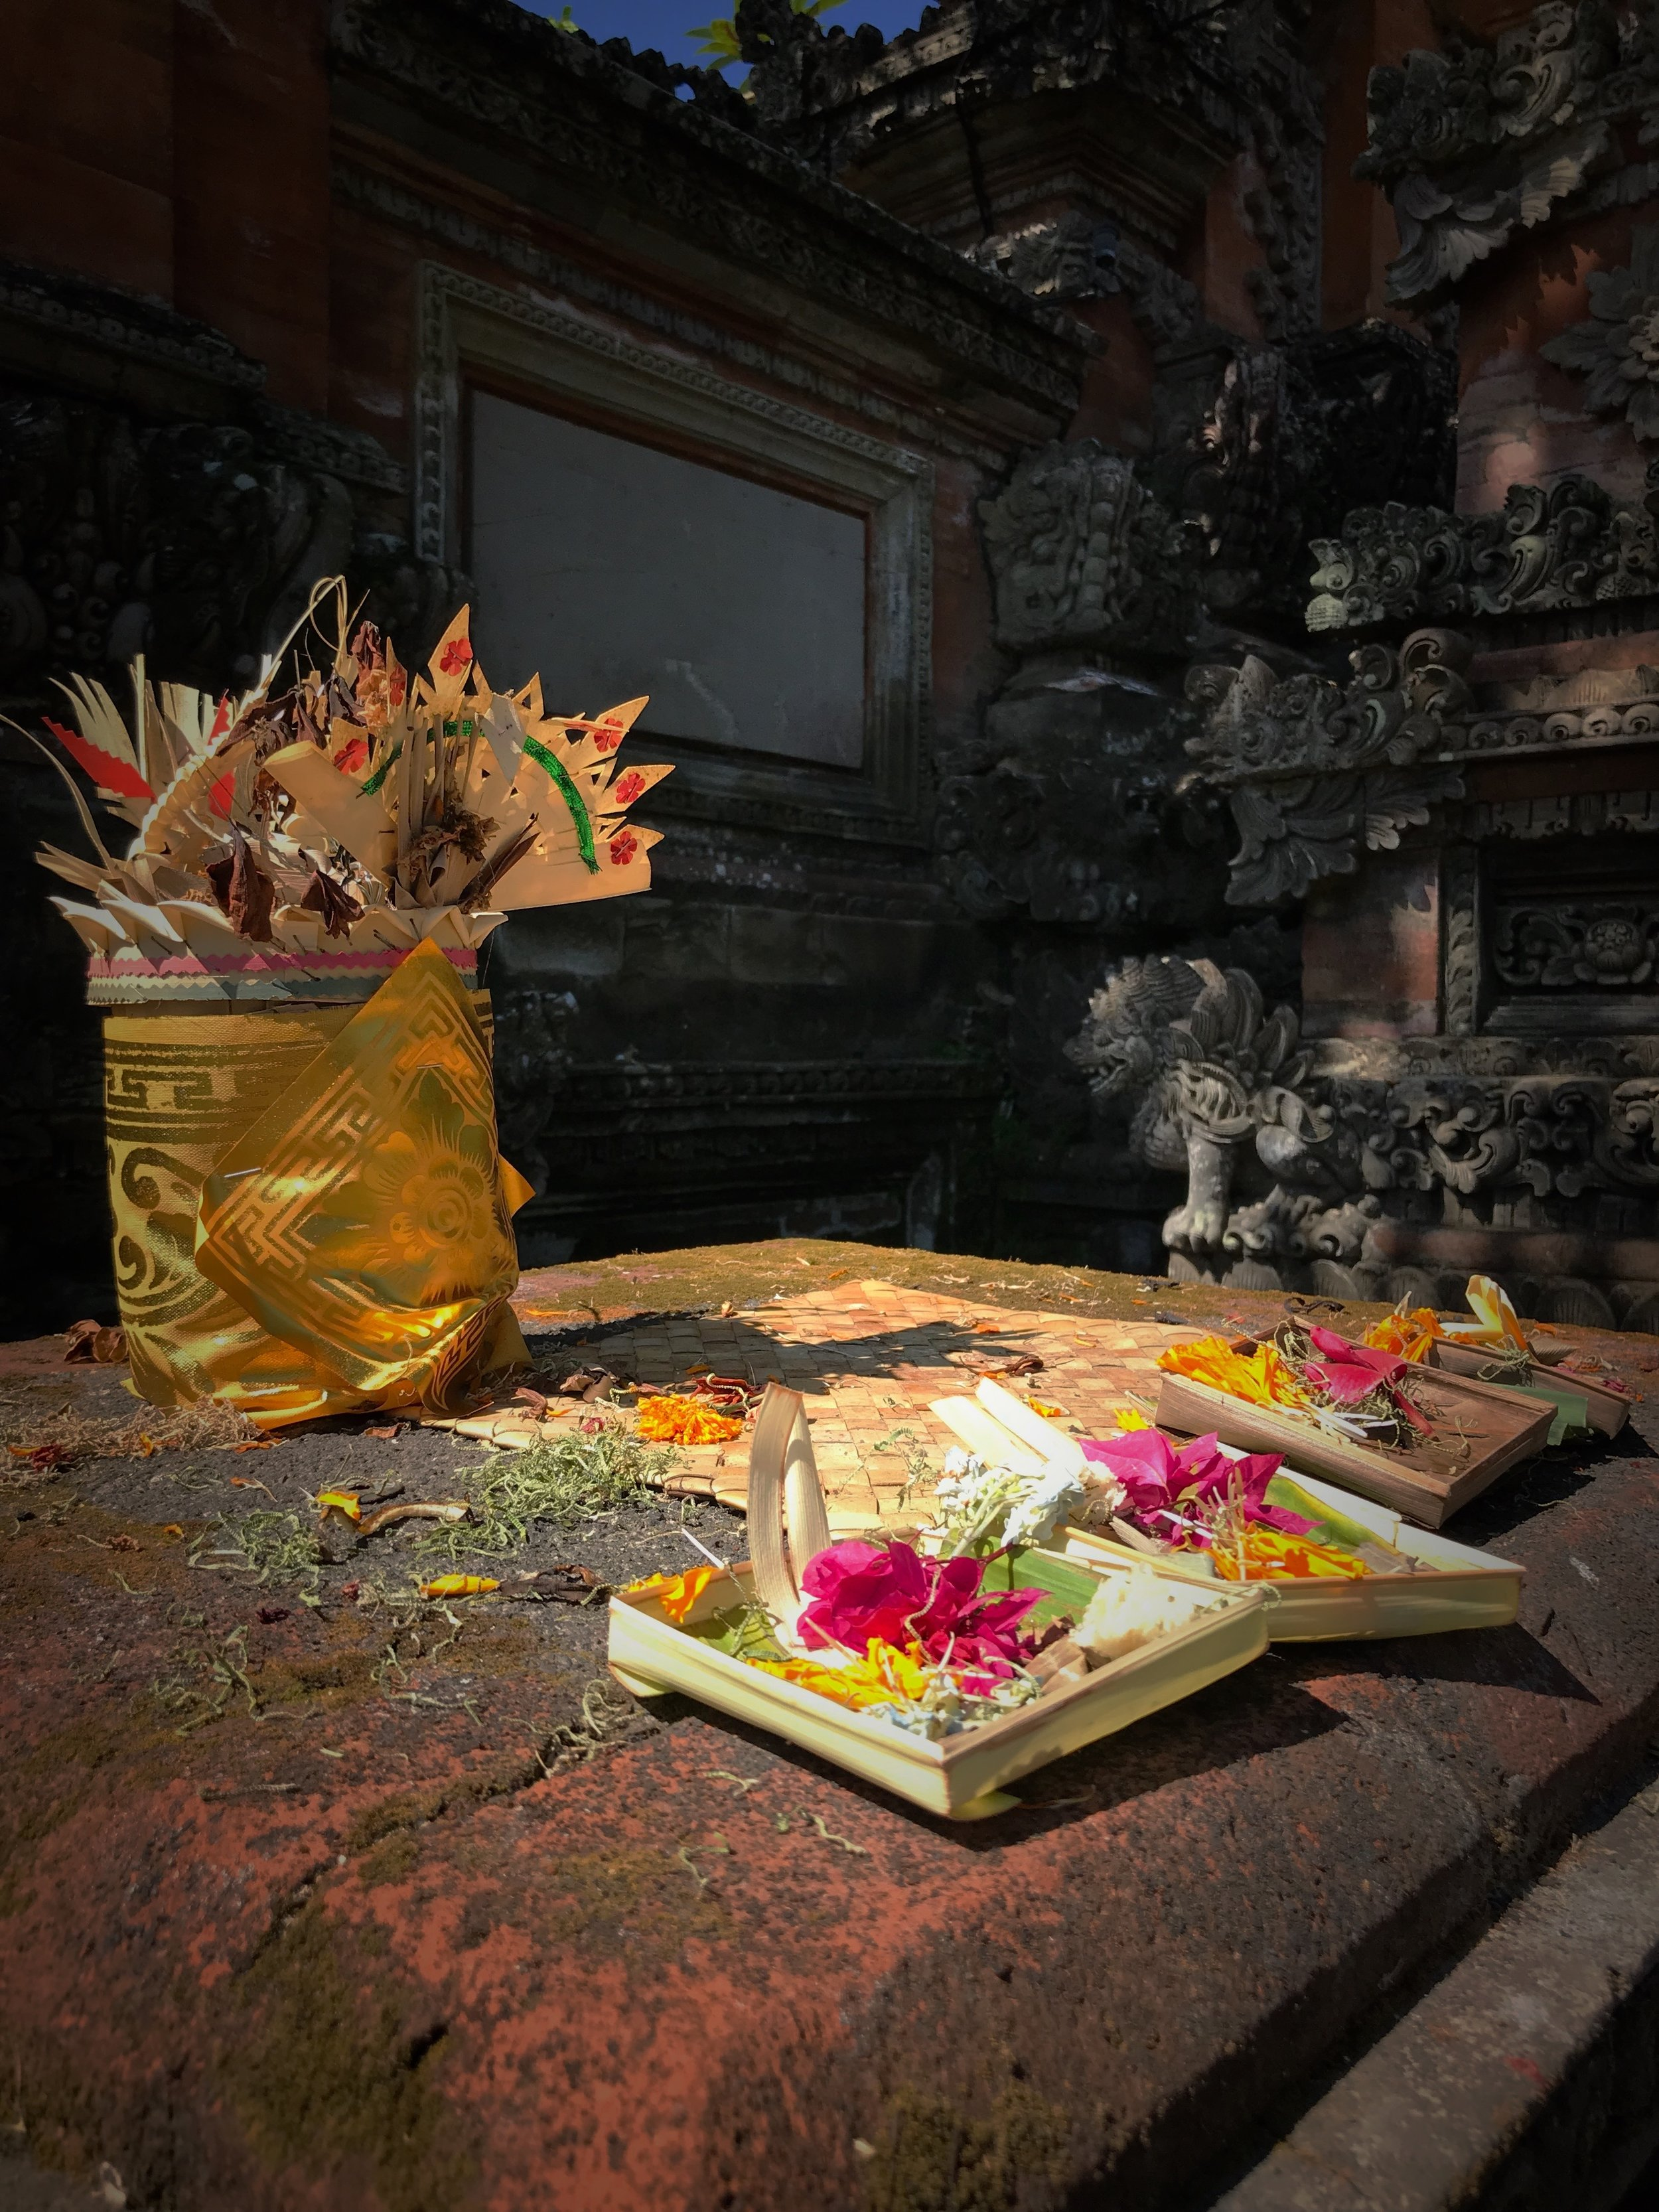 People leave offerings of flowers for Saraswati